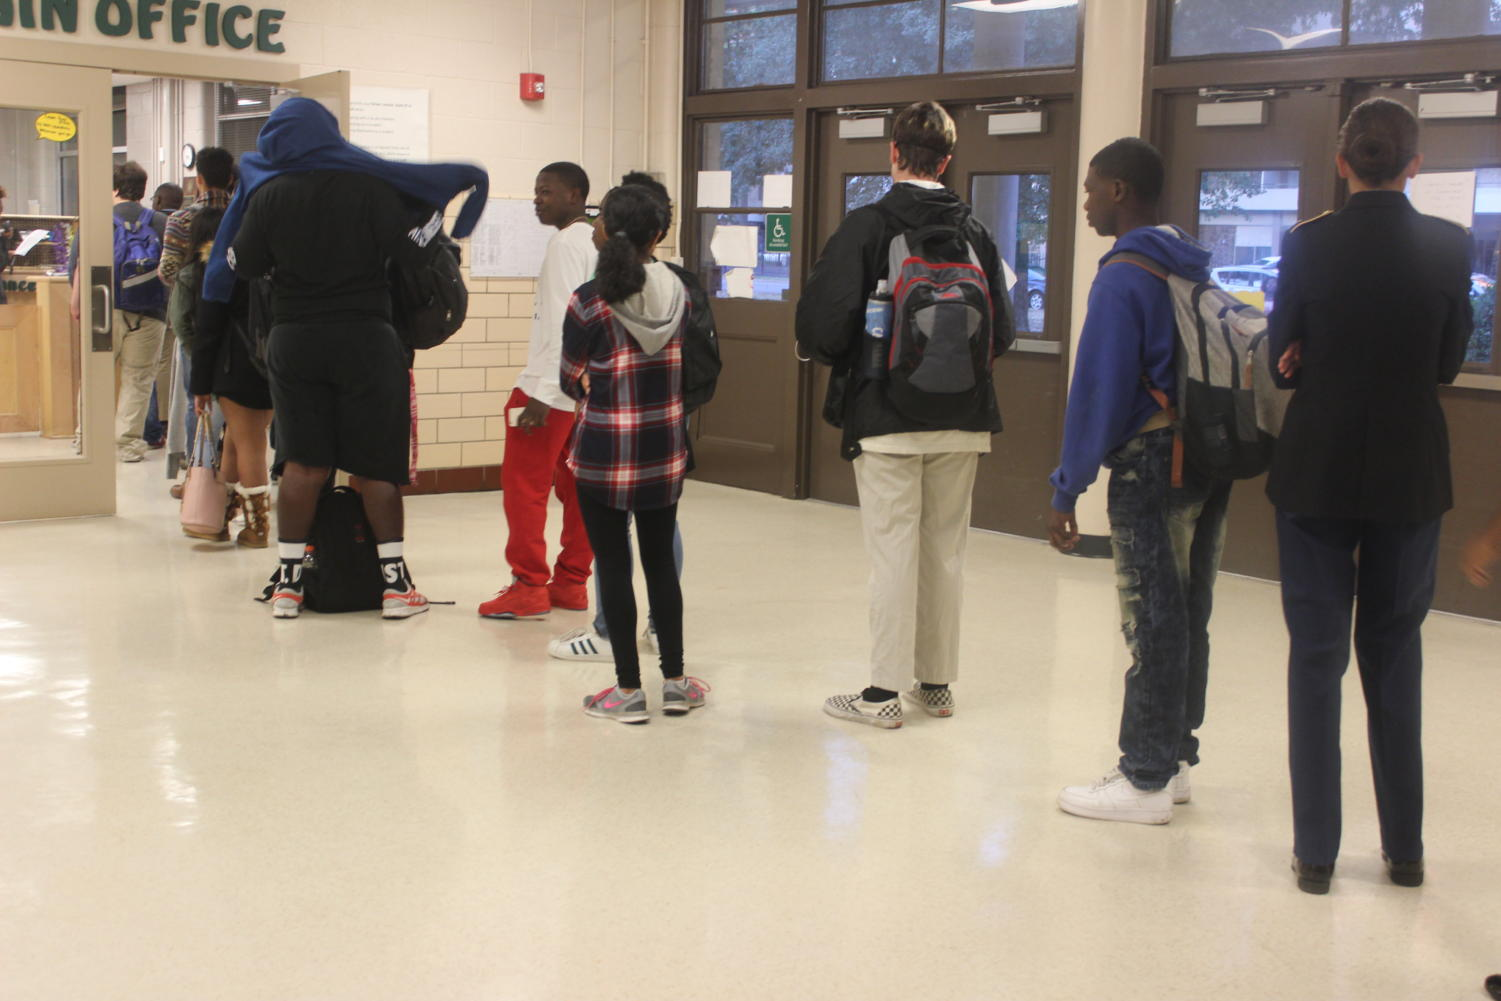 Students line up to collect a tardy slip from the office before school